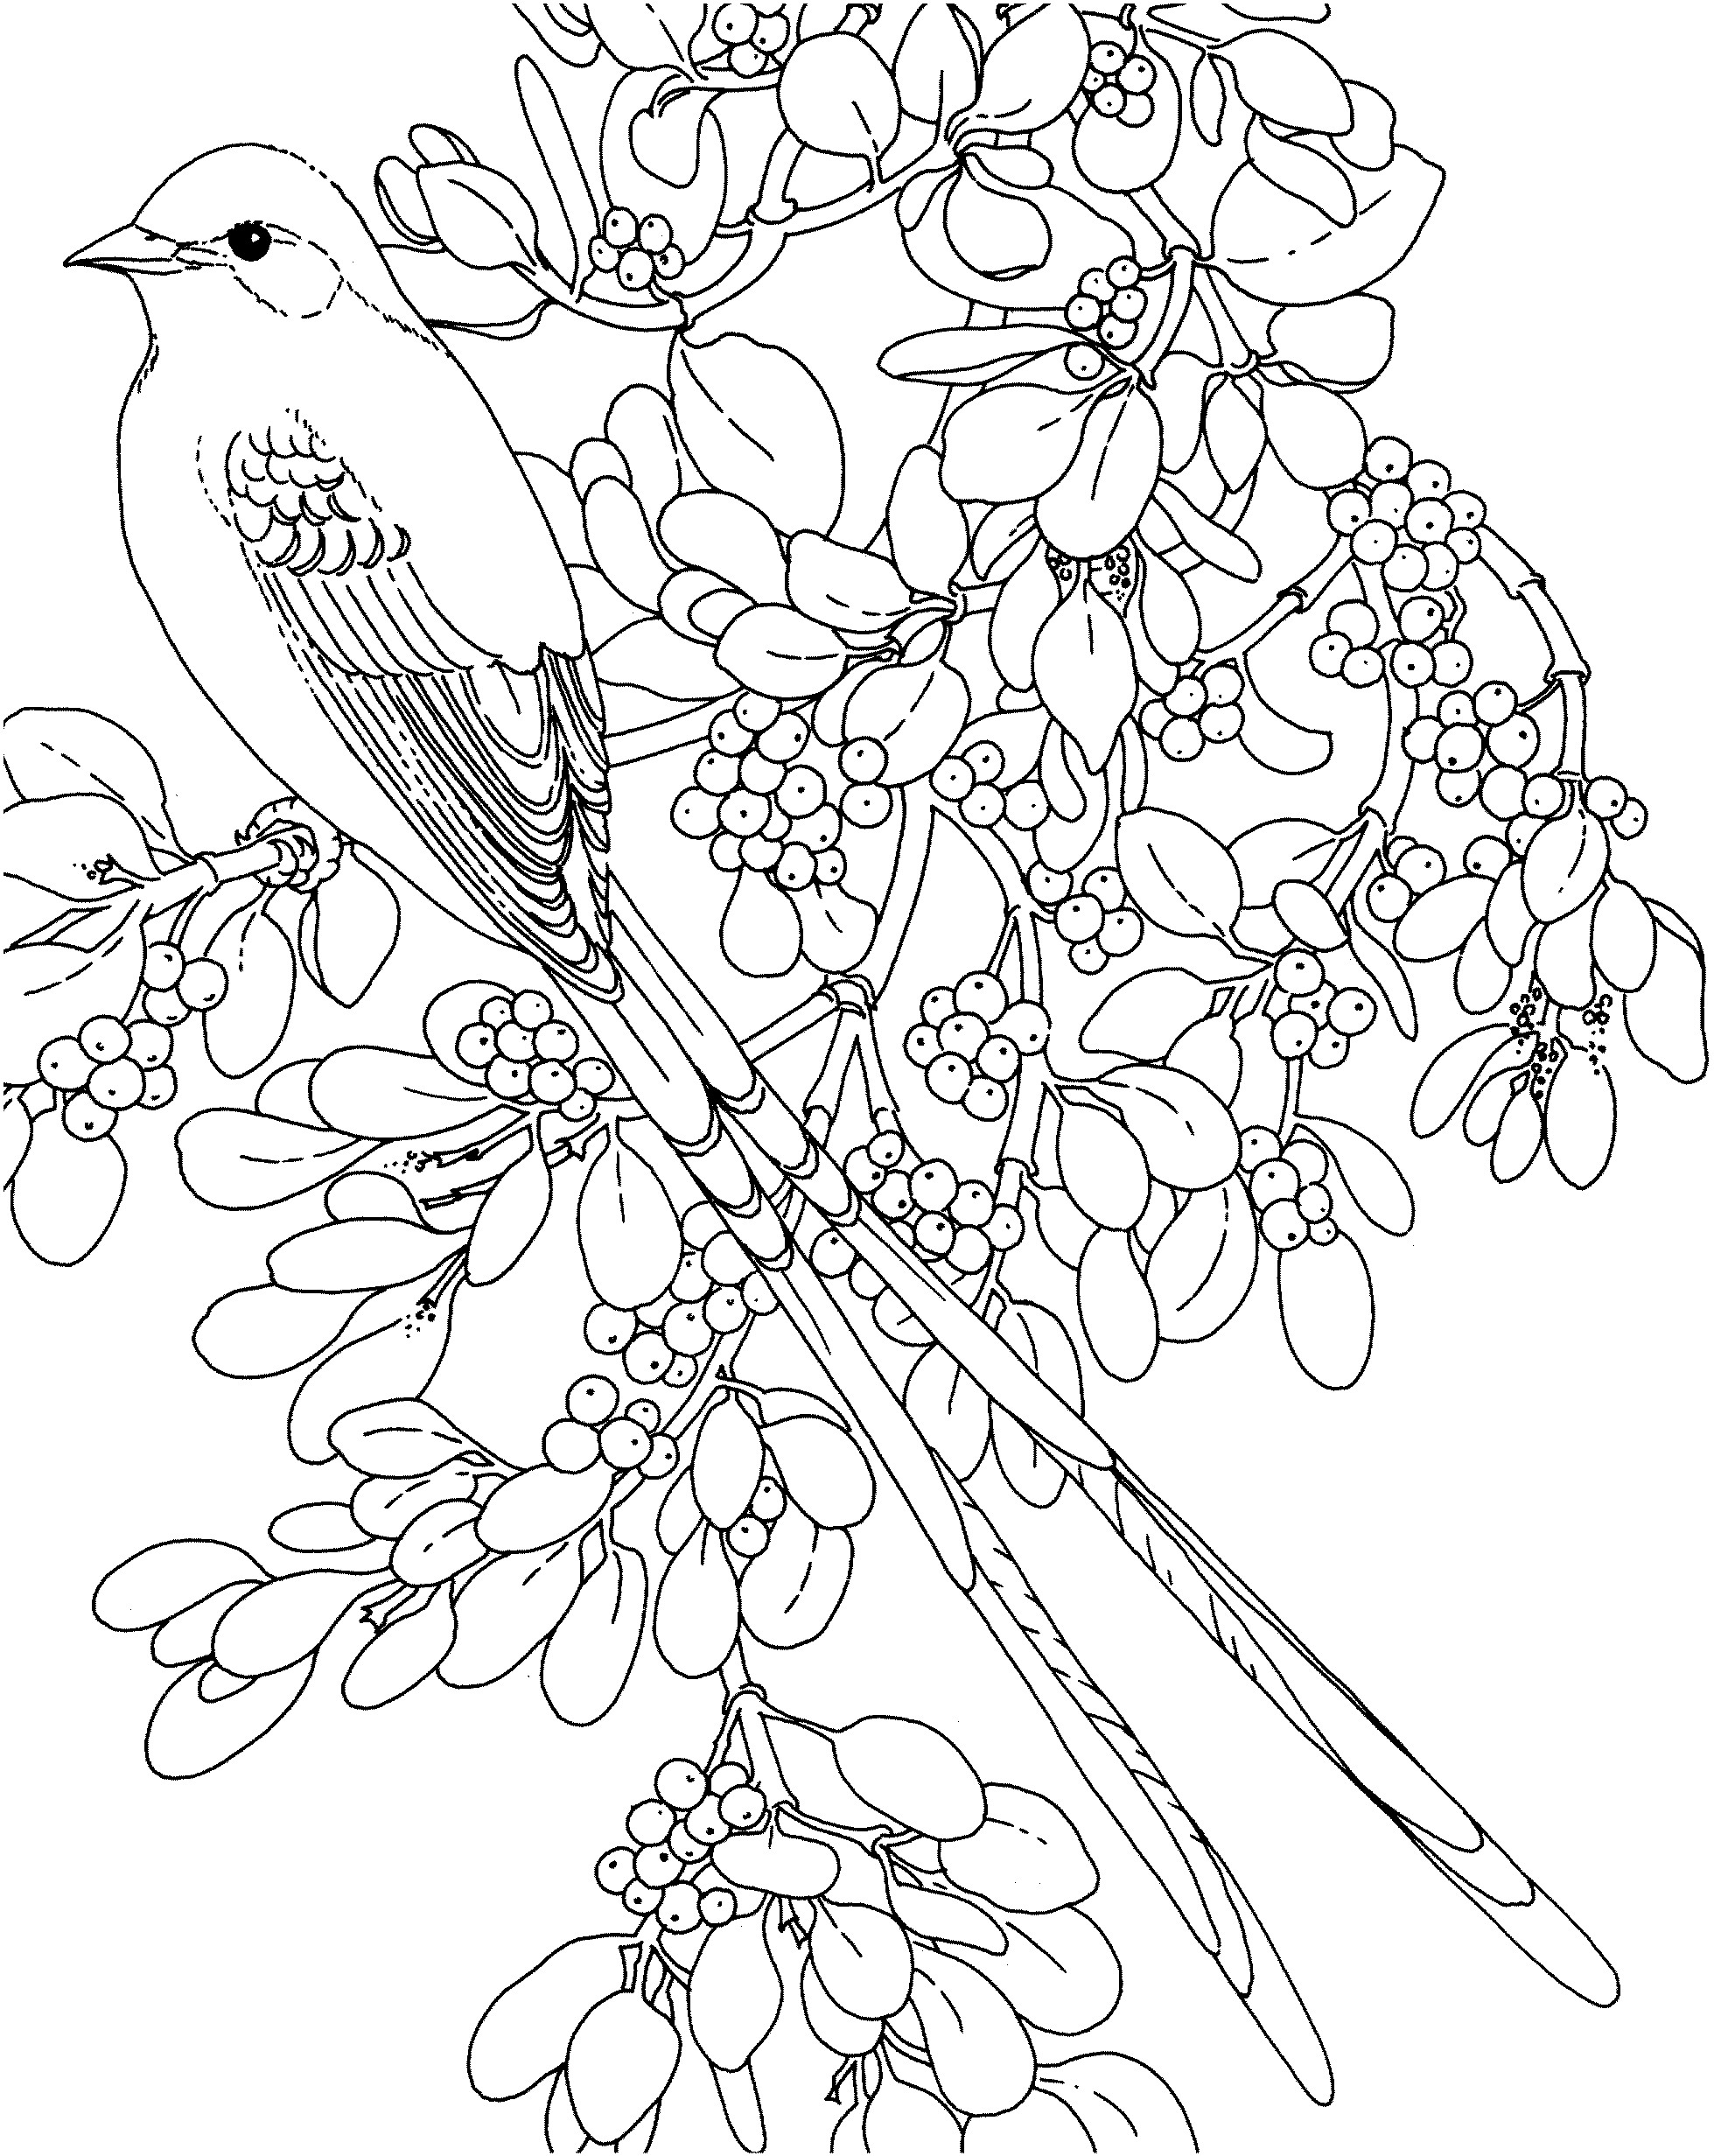 Mistletoe Coloring Pages Best Coloring Pages For Kids